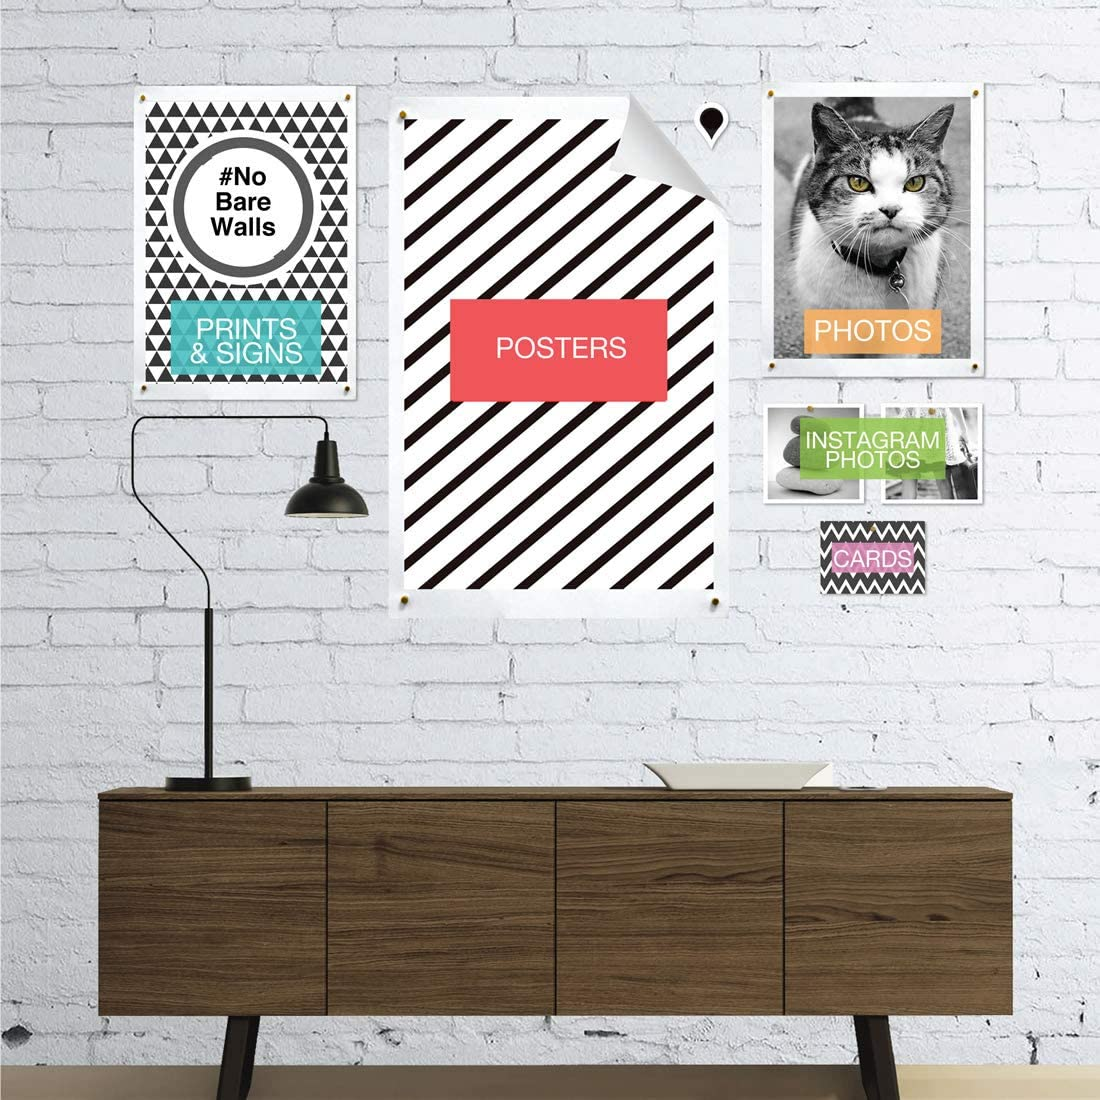 GoodHangups Damage Free Magnetic Poster and Picture Hangers Reusable Works on Any Wall As Seen On Shark Tank 16 Pack